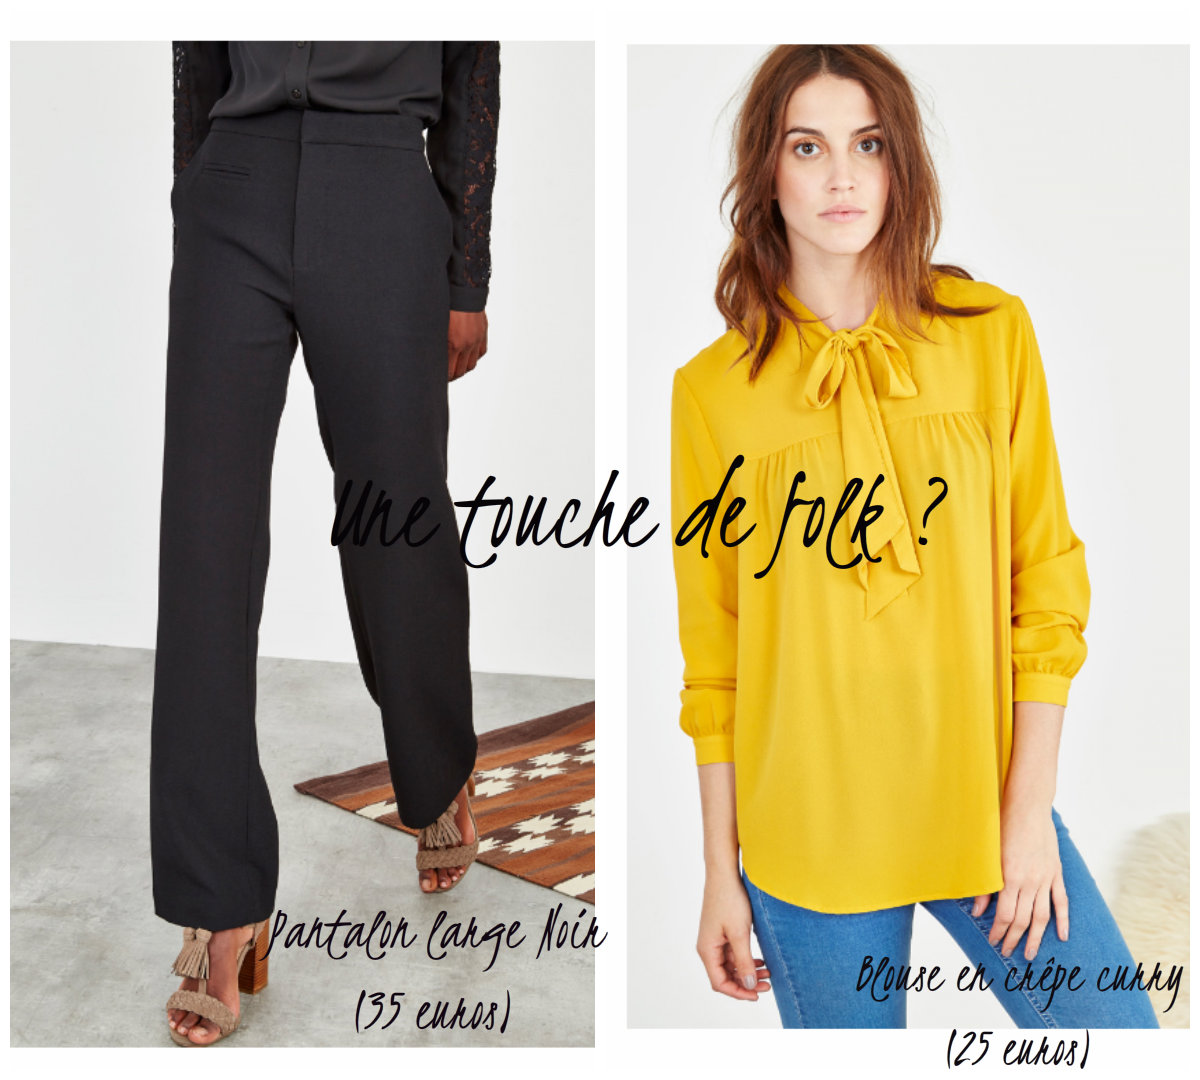 collection irl showroomprive shopping bon plan mode fashion style tenue